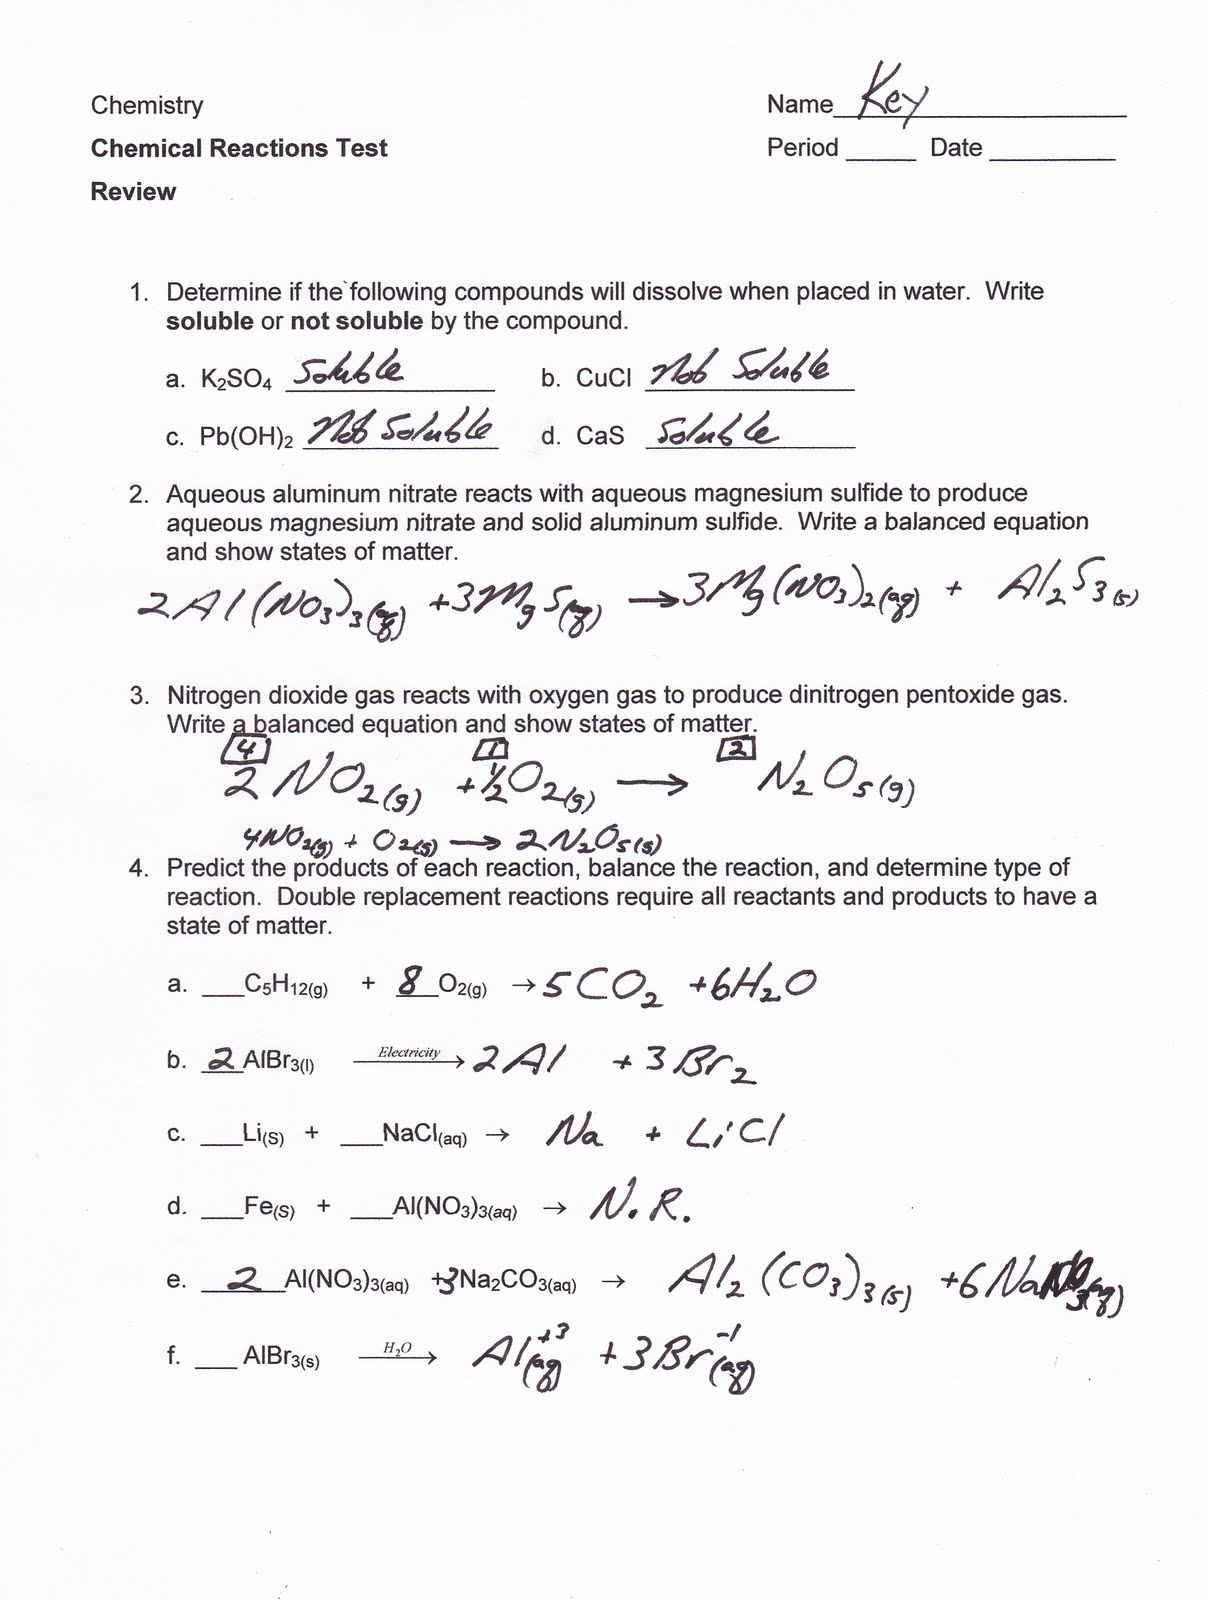 Printables Chemistry Review Worksheet Answers chemistry review worksheet answers davezan mr brueckner 39 s class hhs 2011 12